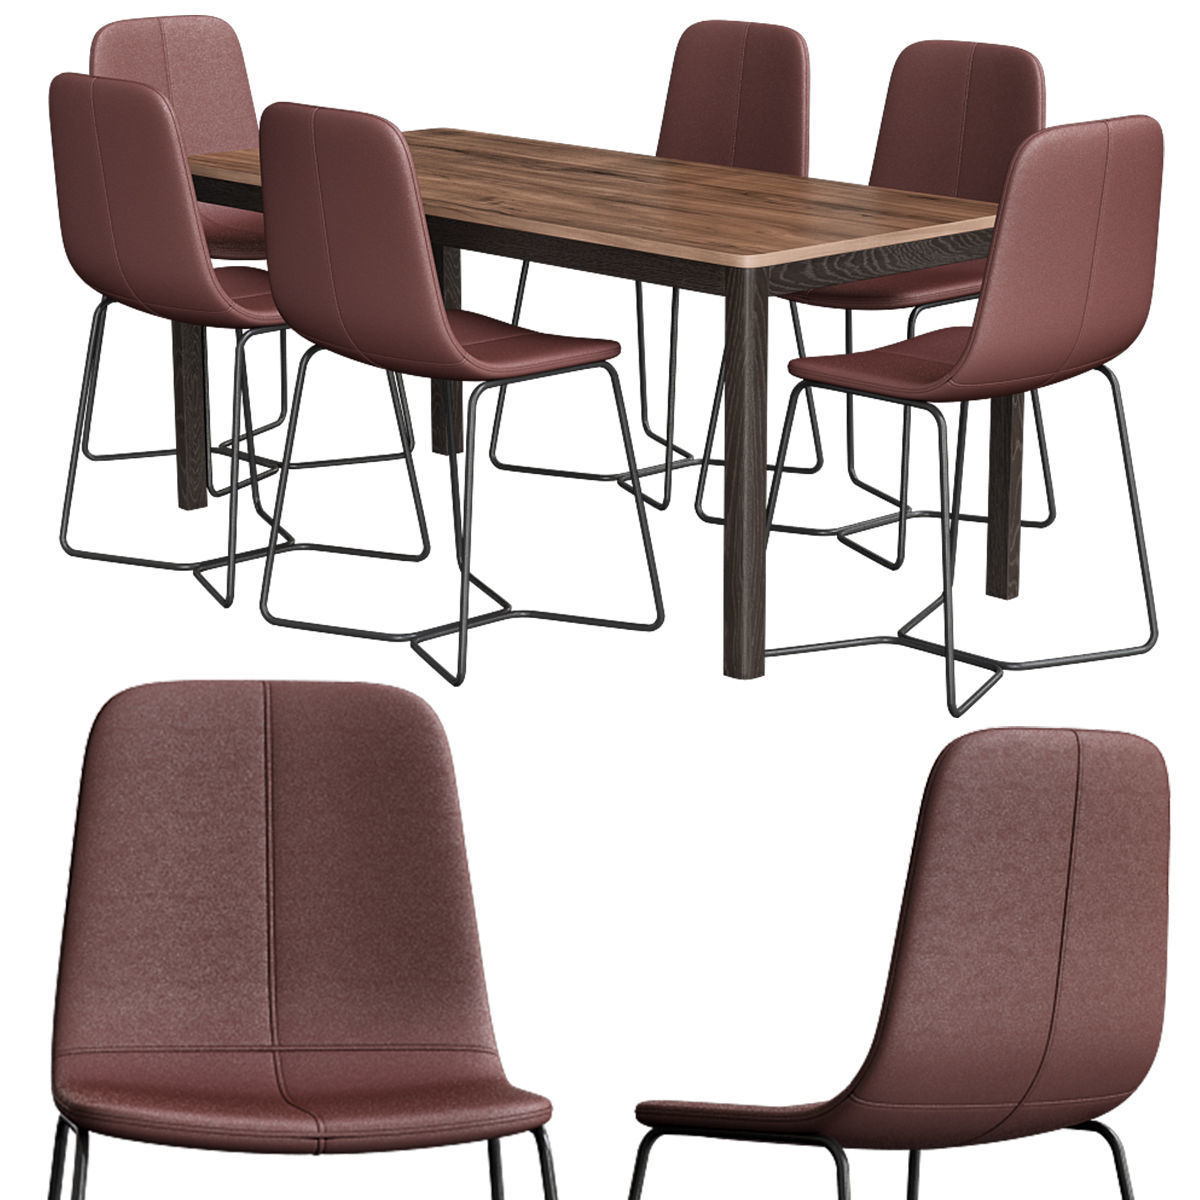 Surprising Brown Leather Chair West Elm Alphanode Cool Chair Designs And Ideas Alphanodeonline